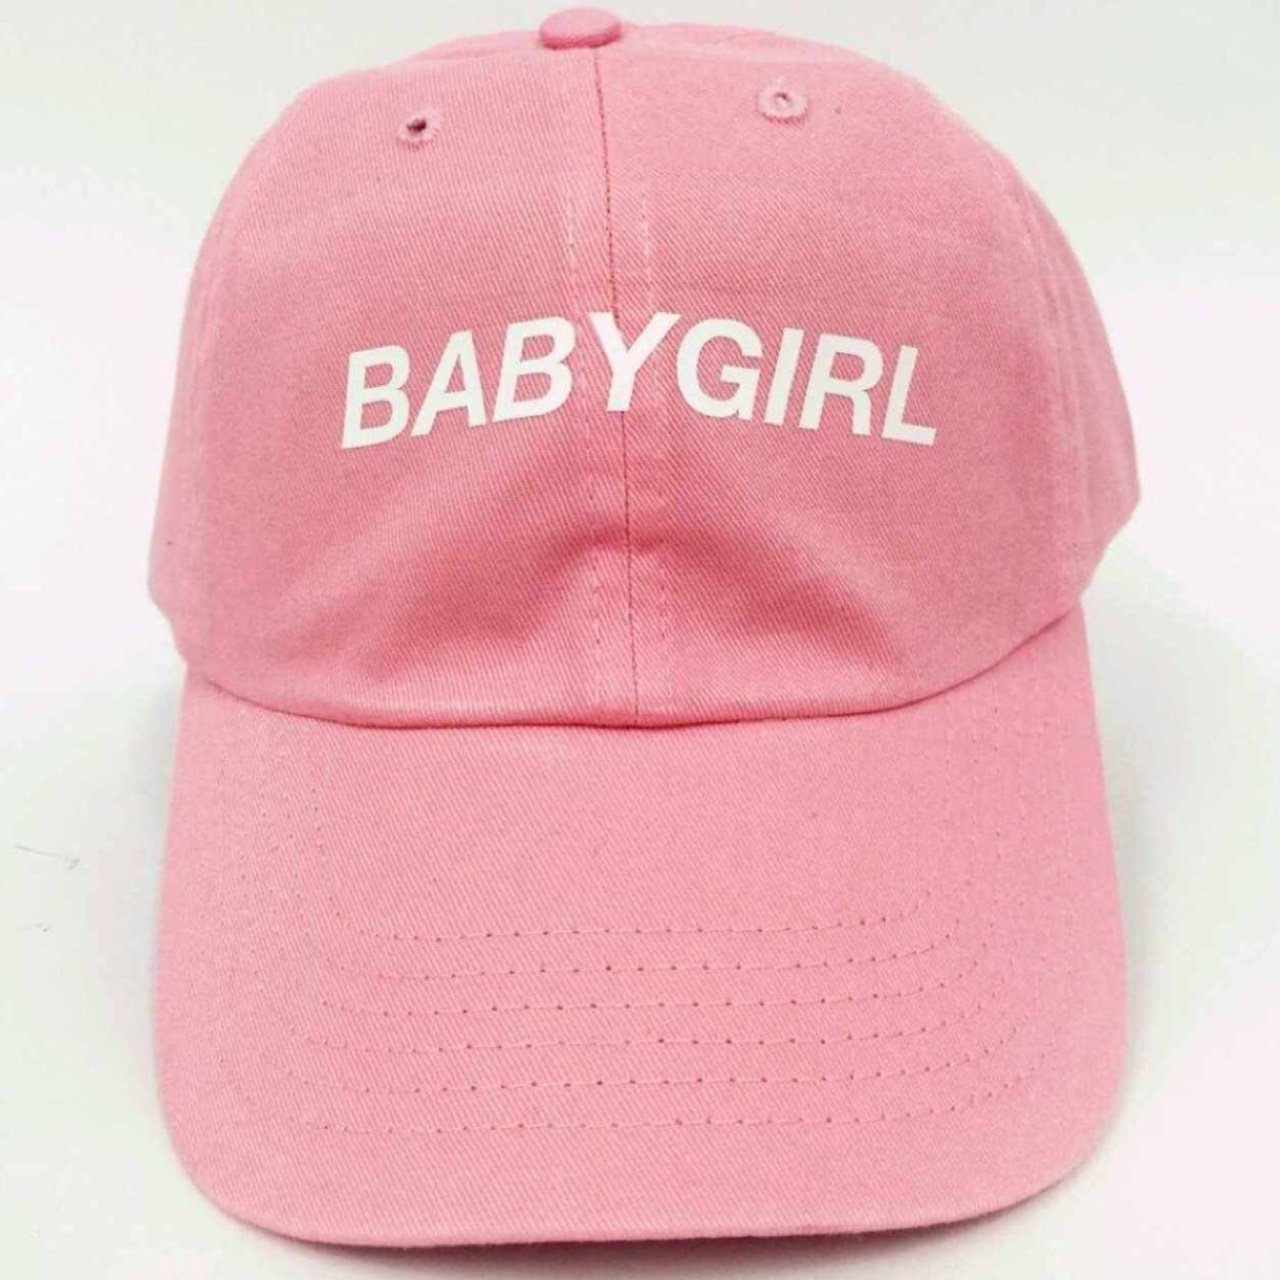 fca39879e69  theprolificshop. 3 years ago. United States. BabyGirl Hat in Pink